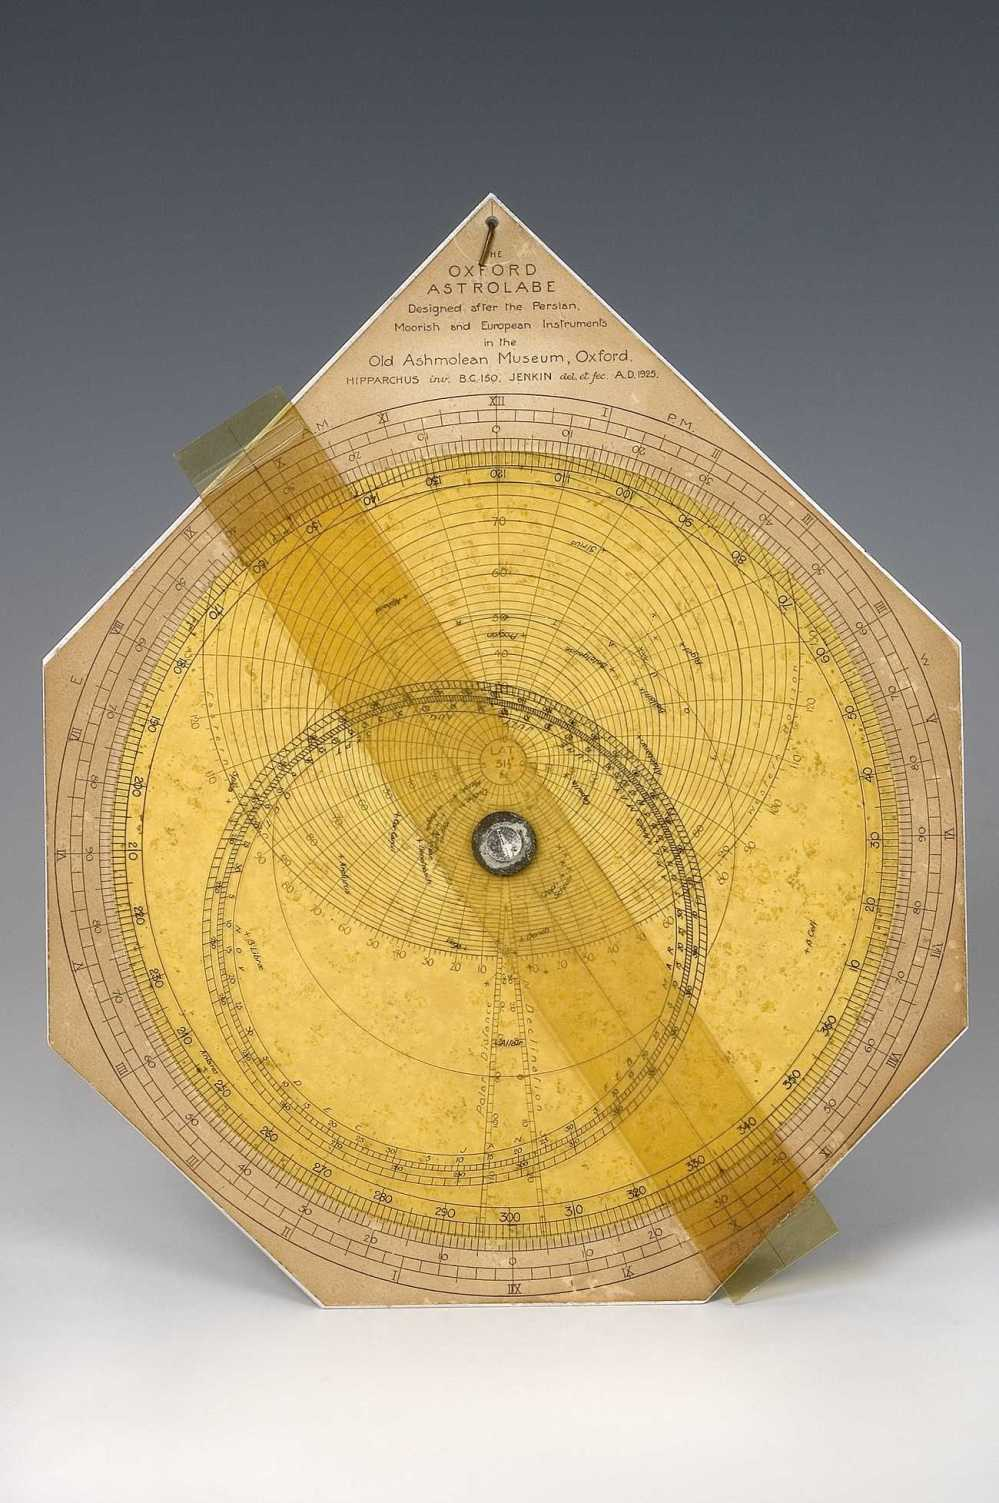 preview image for The Oxford Astrolabe, by W. Watson & Sons, London, 1925